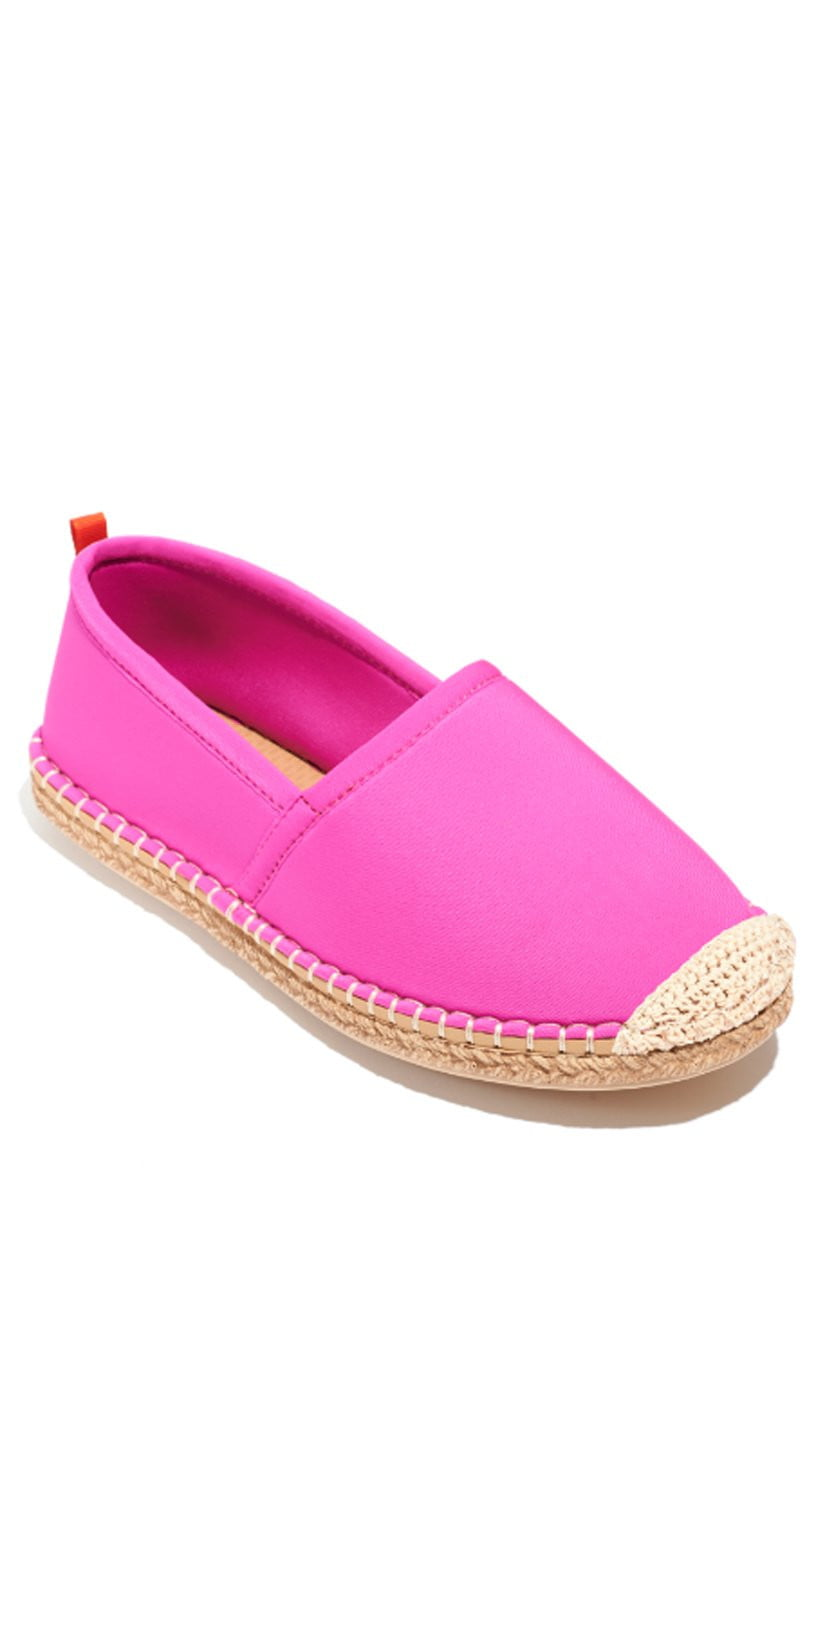 Sea Star Beachwear Kid's Beachcomber Espadrille in Hot Pink: